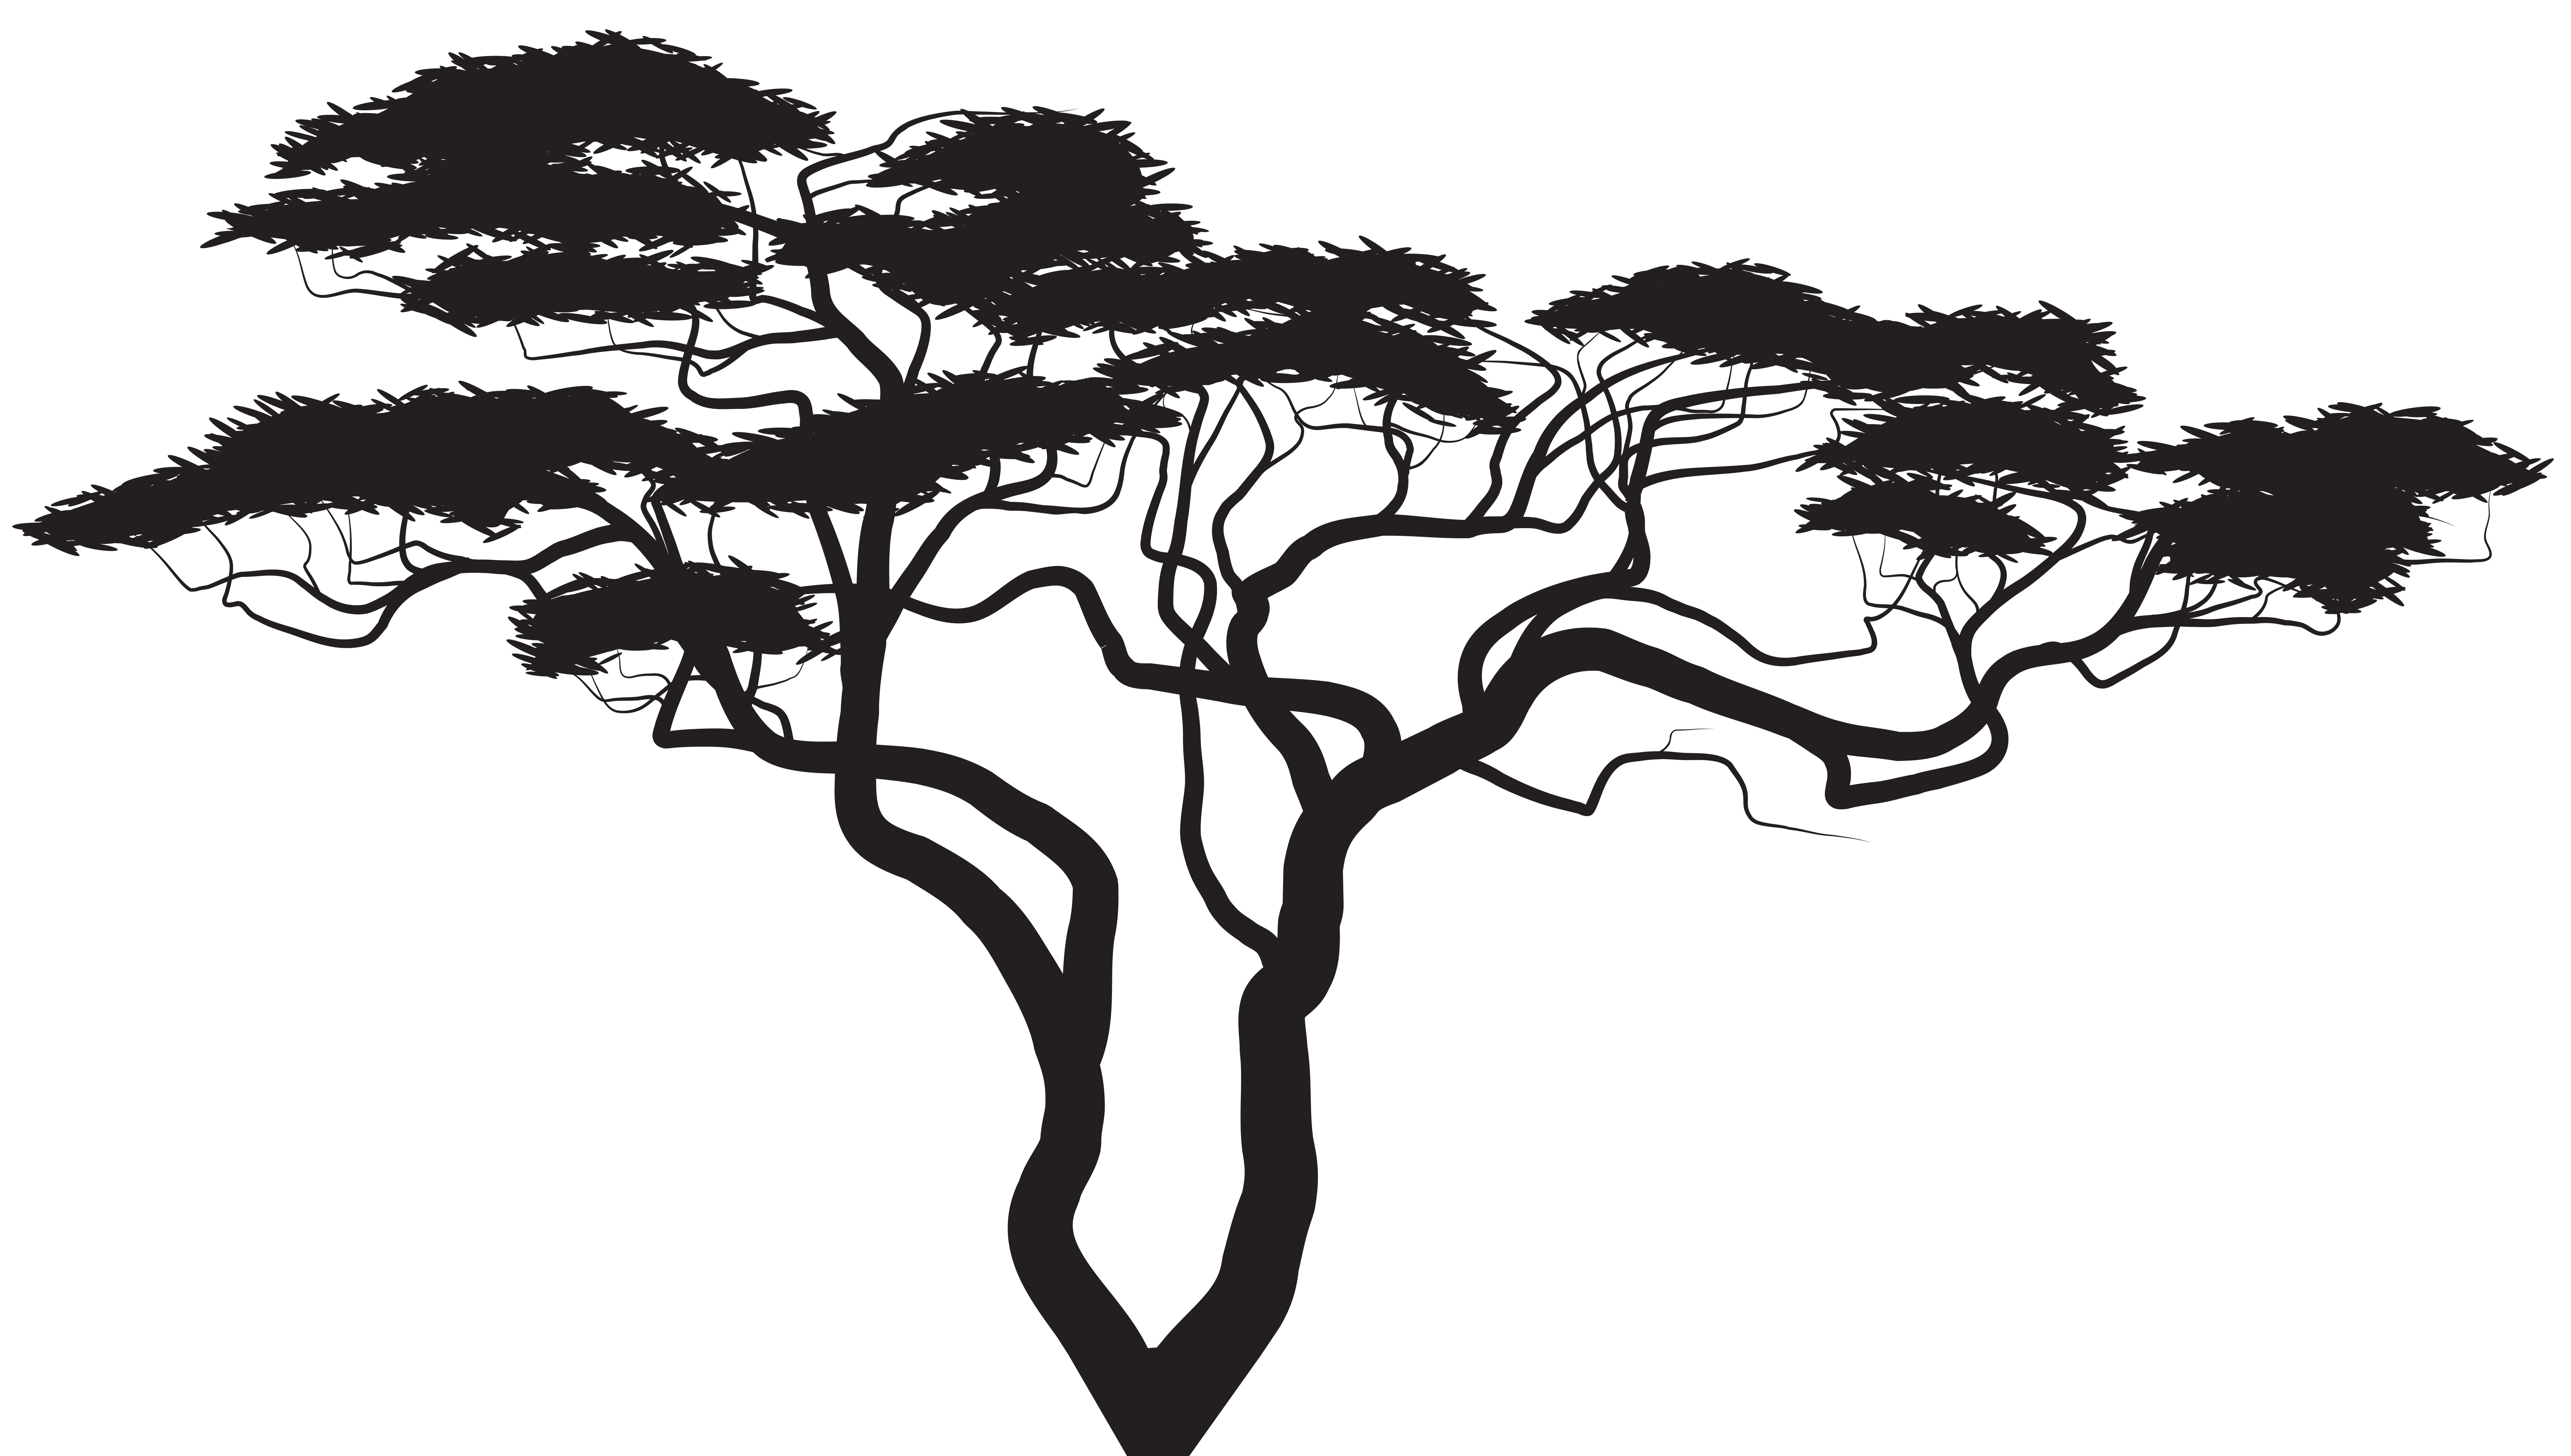 Trail clipart nature scenery. Exotic tree silhouette png